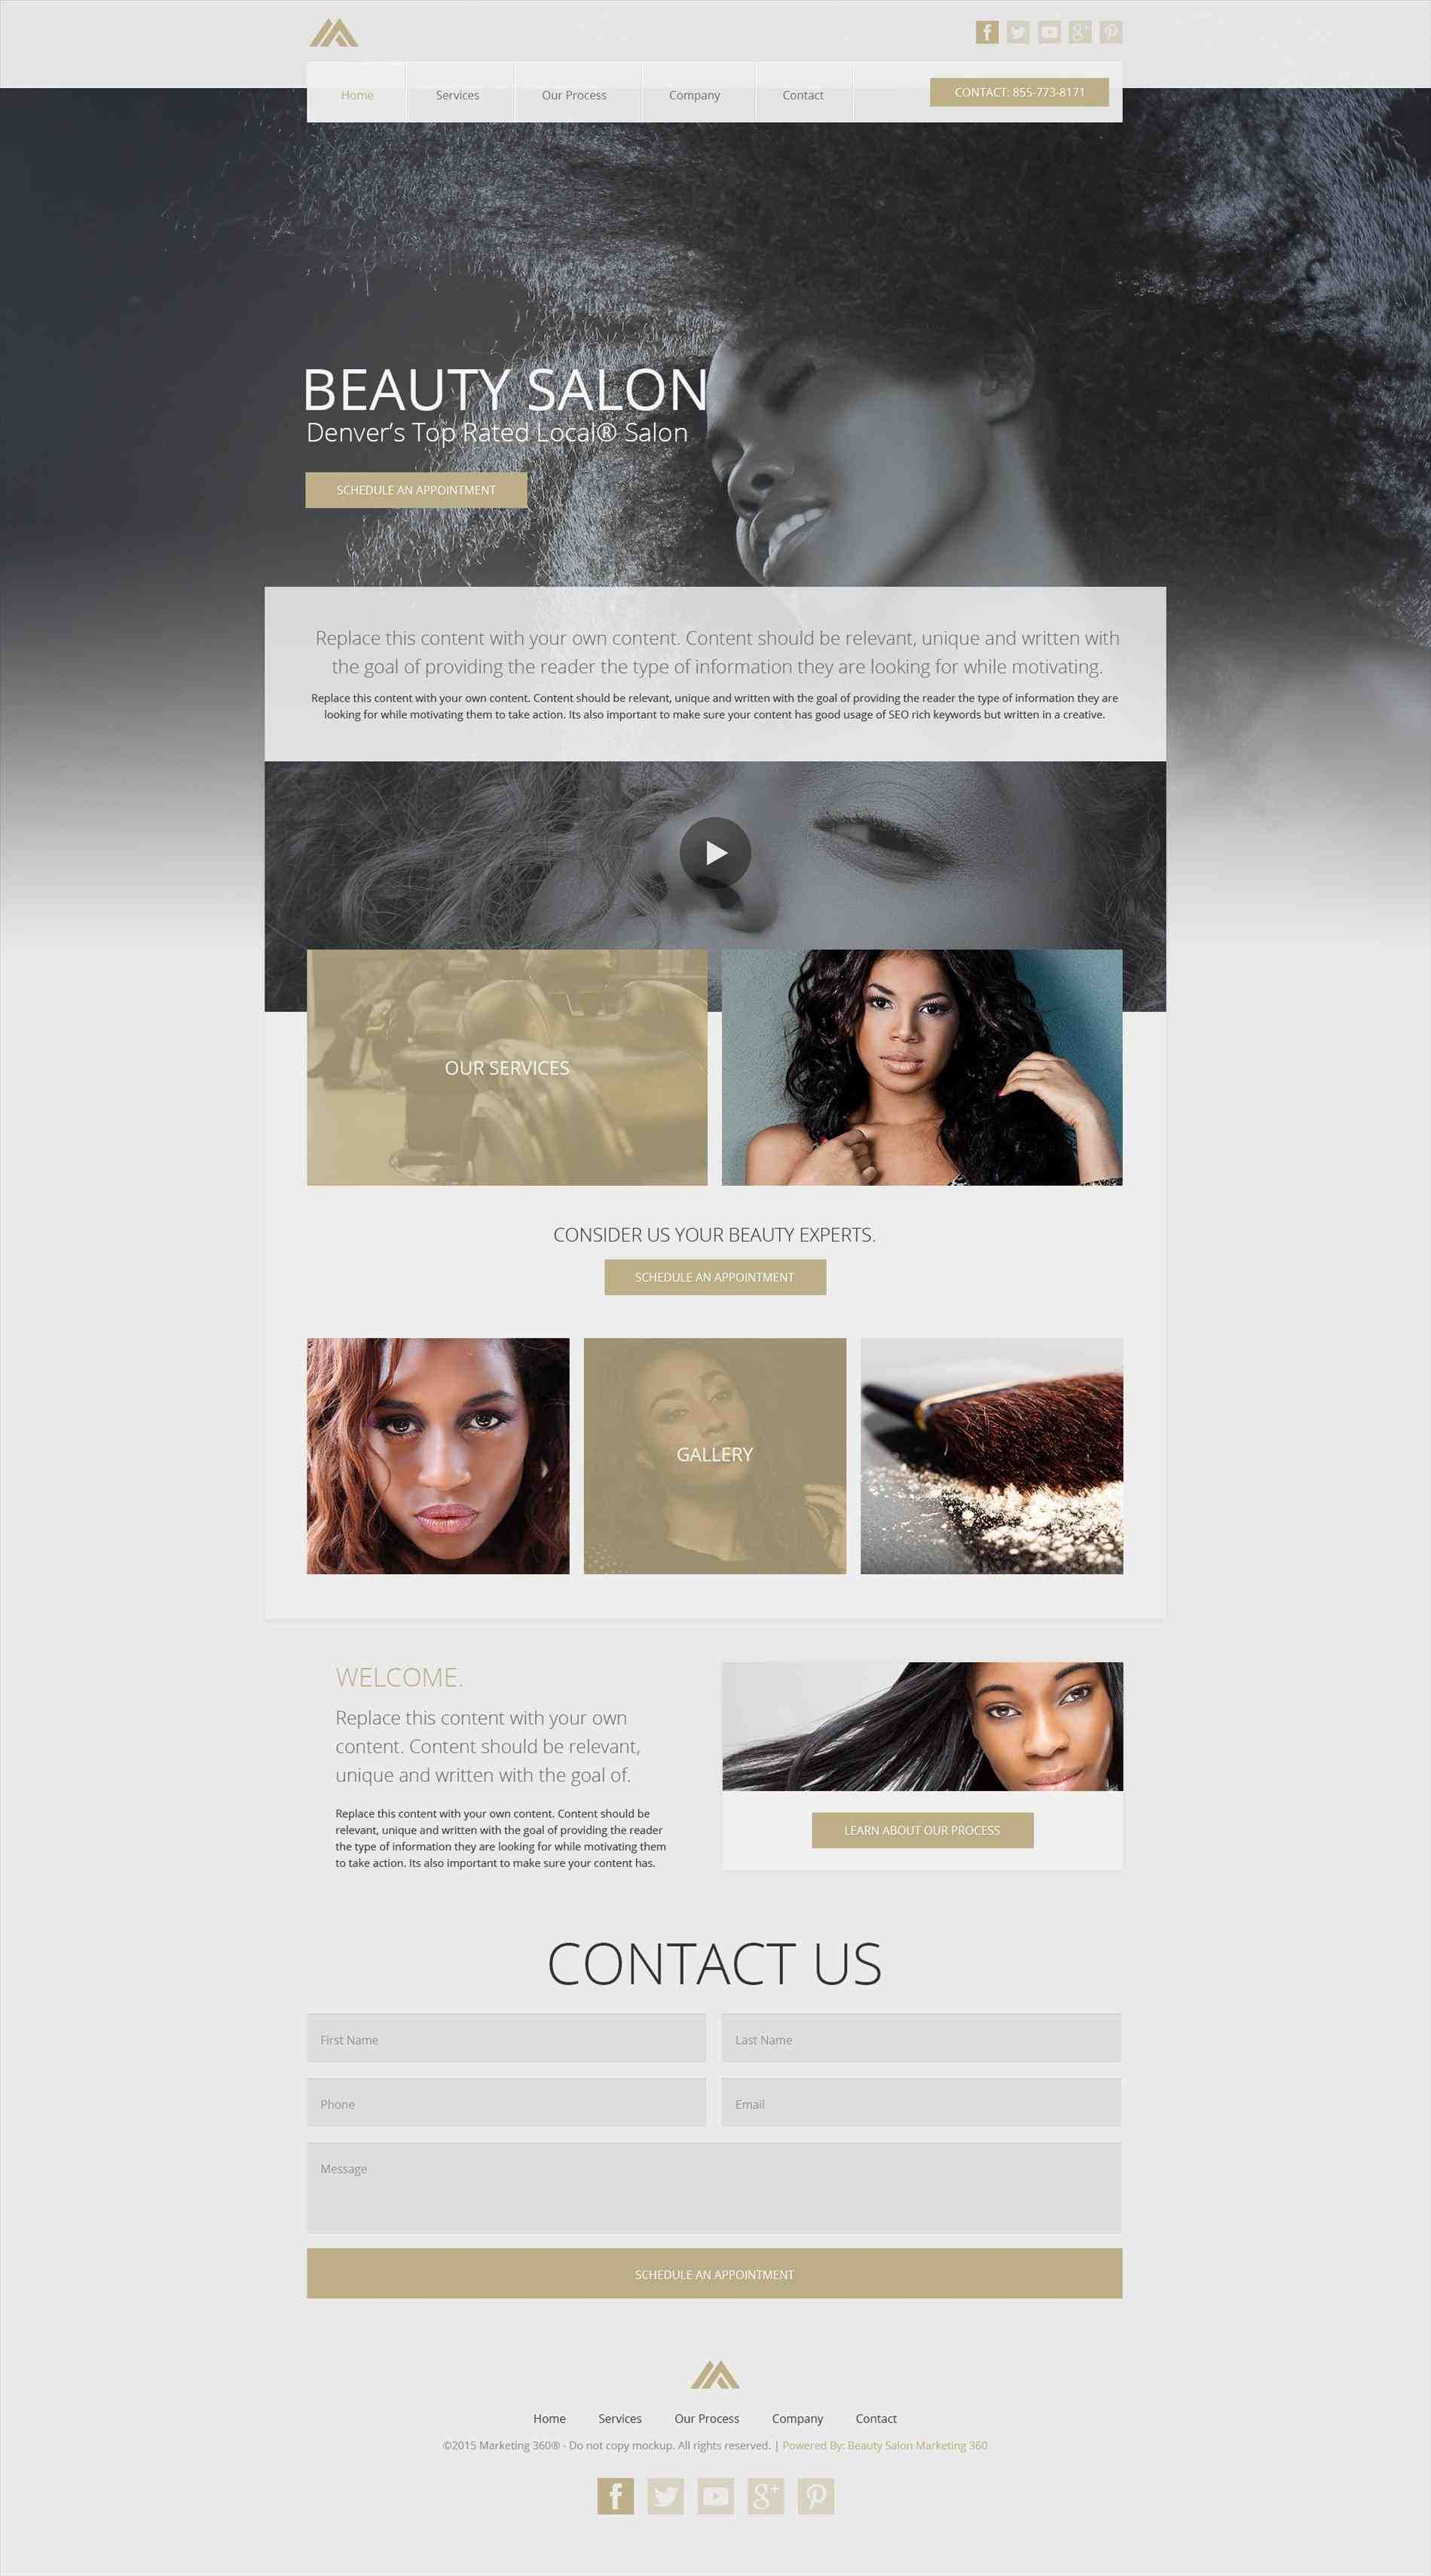 Balayagehair Club Nbspthis Website Is For Sale Nbspbalayagehair Resources And Information Beauty Salon Names Salon Names Beauty Salon